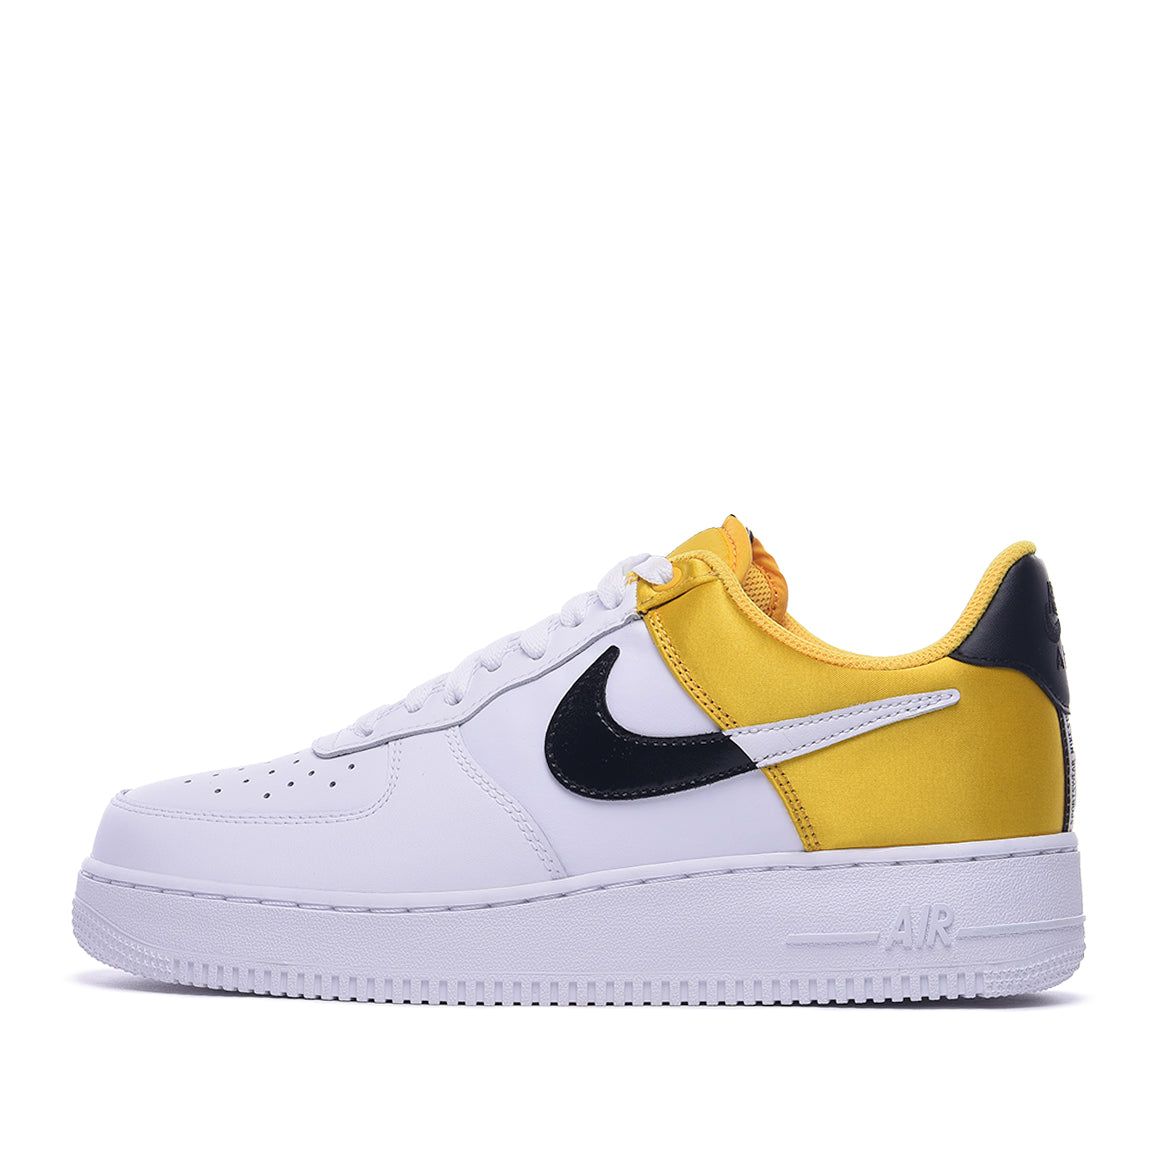 "AIR FORCE 1 `07 LV8 1""NBA PACK"" - AMARILLO"